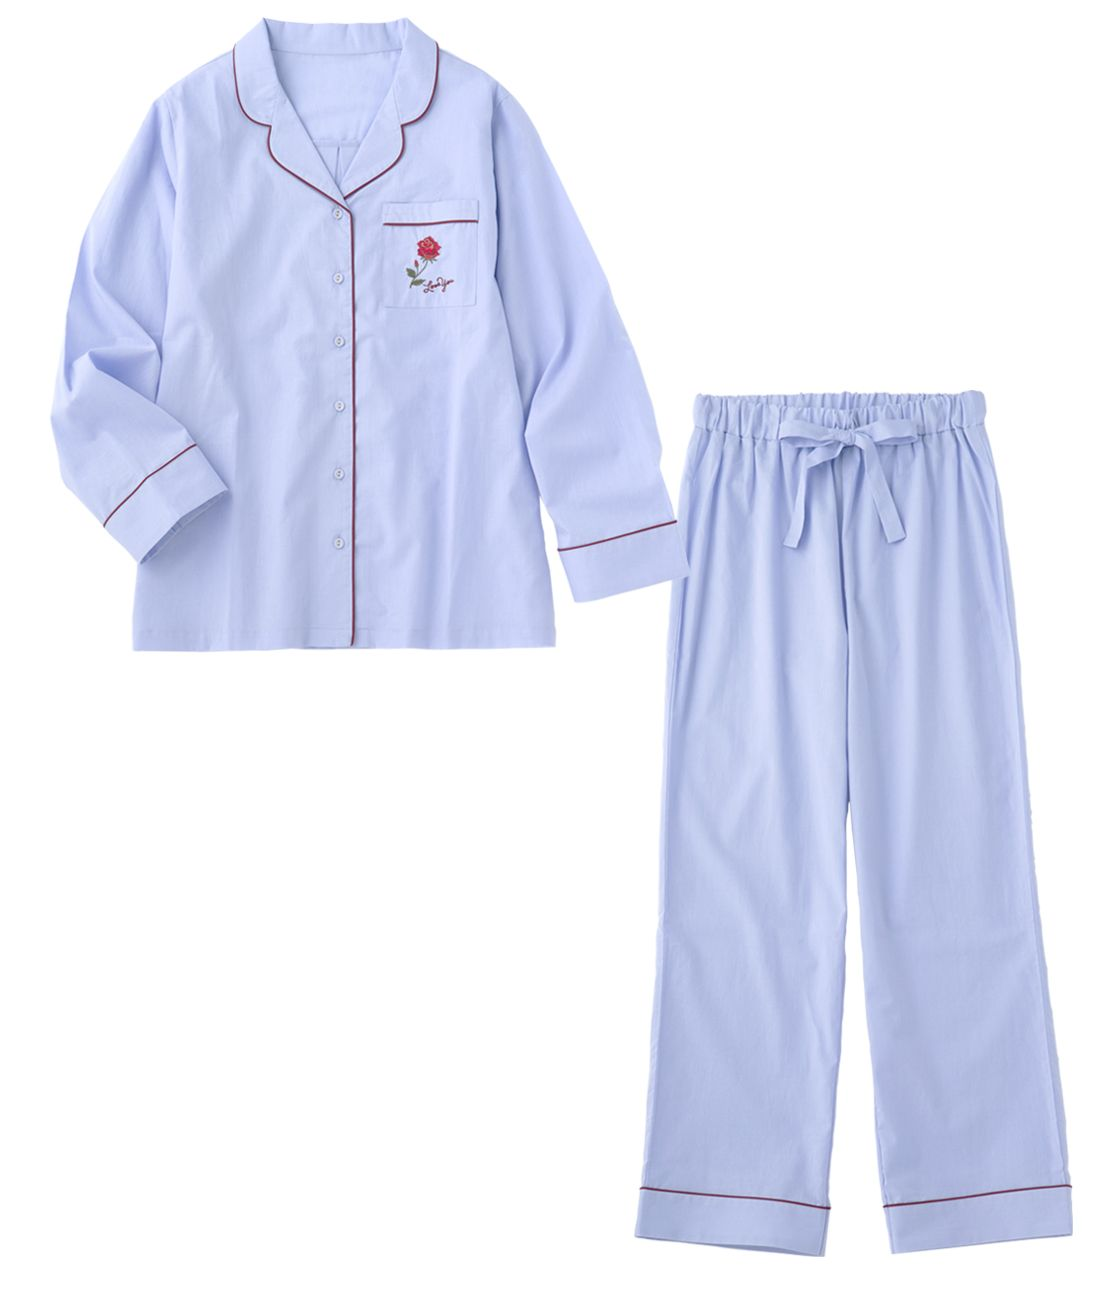 Cotton shirt pajamas